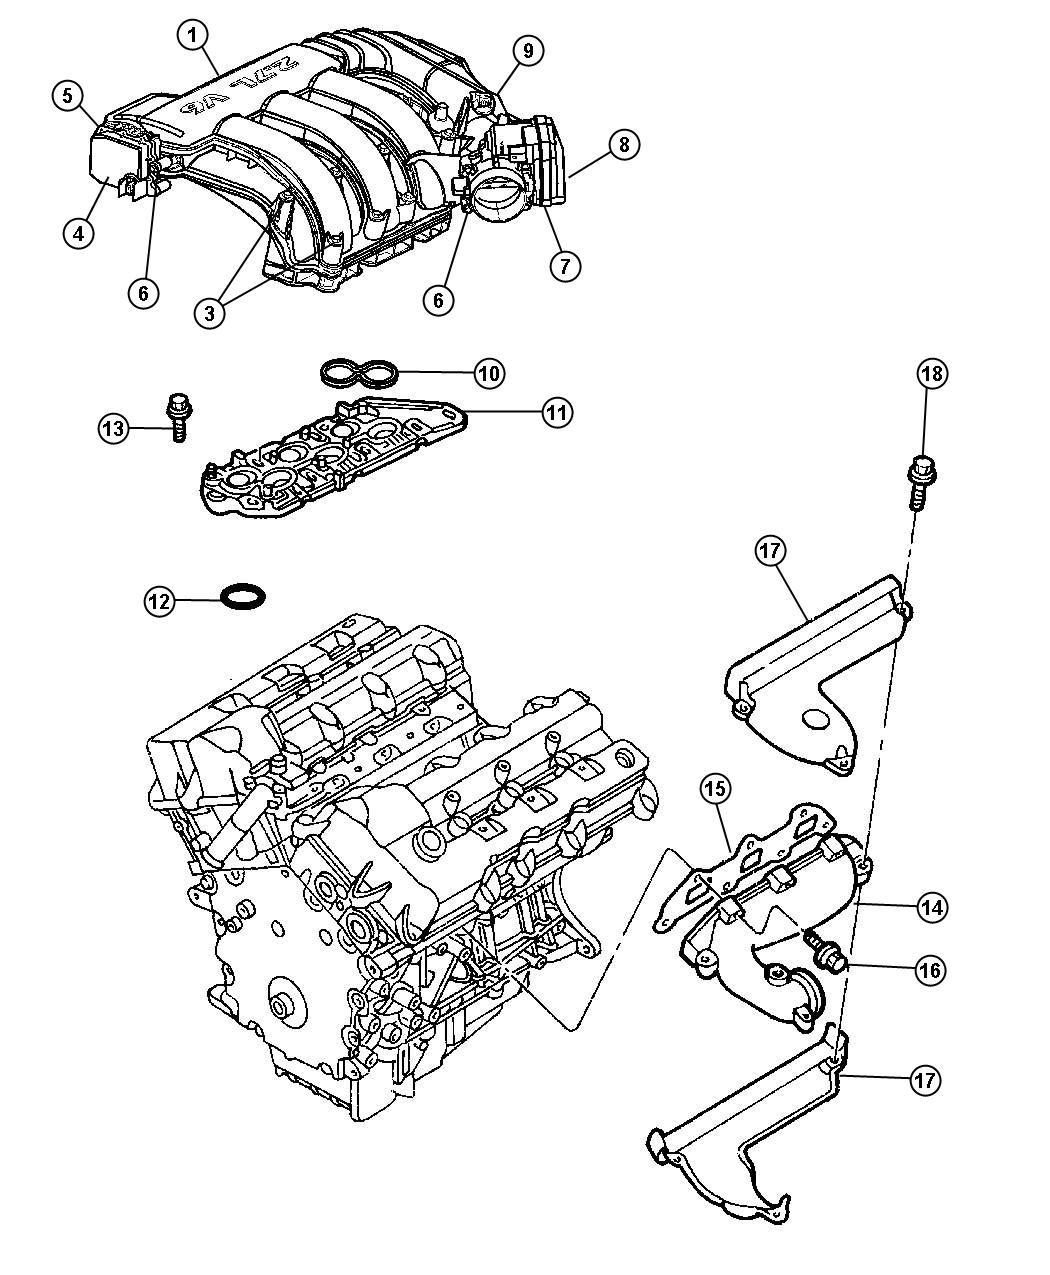 Wiring Diagram Of 1954 Gmc Early Diesel Models Series D620 47 Through D660 47 60937 moreover 2003 G35 Thermostat Location likewise Nissan An Stereo Wiring Harness together with T9538411 Need fuse box diagram moreover Post nissan Pathfinder Radio Wiring Diagram 597352. on radio wiring diagram g35